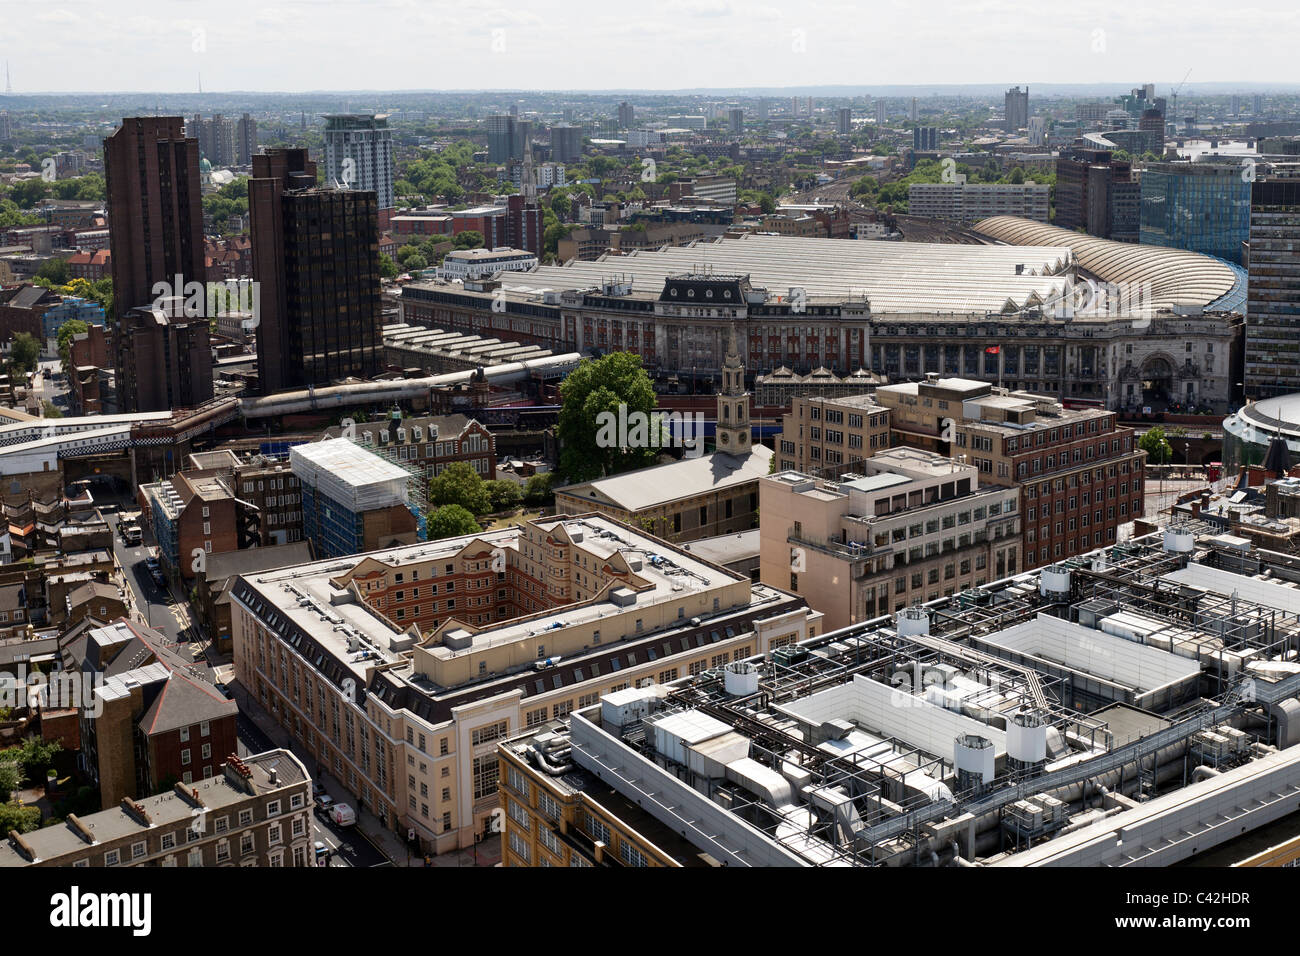 Aerial view of Waterloo Railway Station, from the Southbank, London, England, UK. - Stock Image